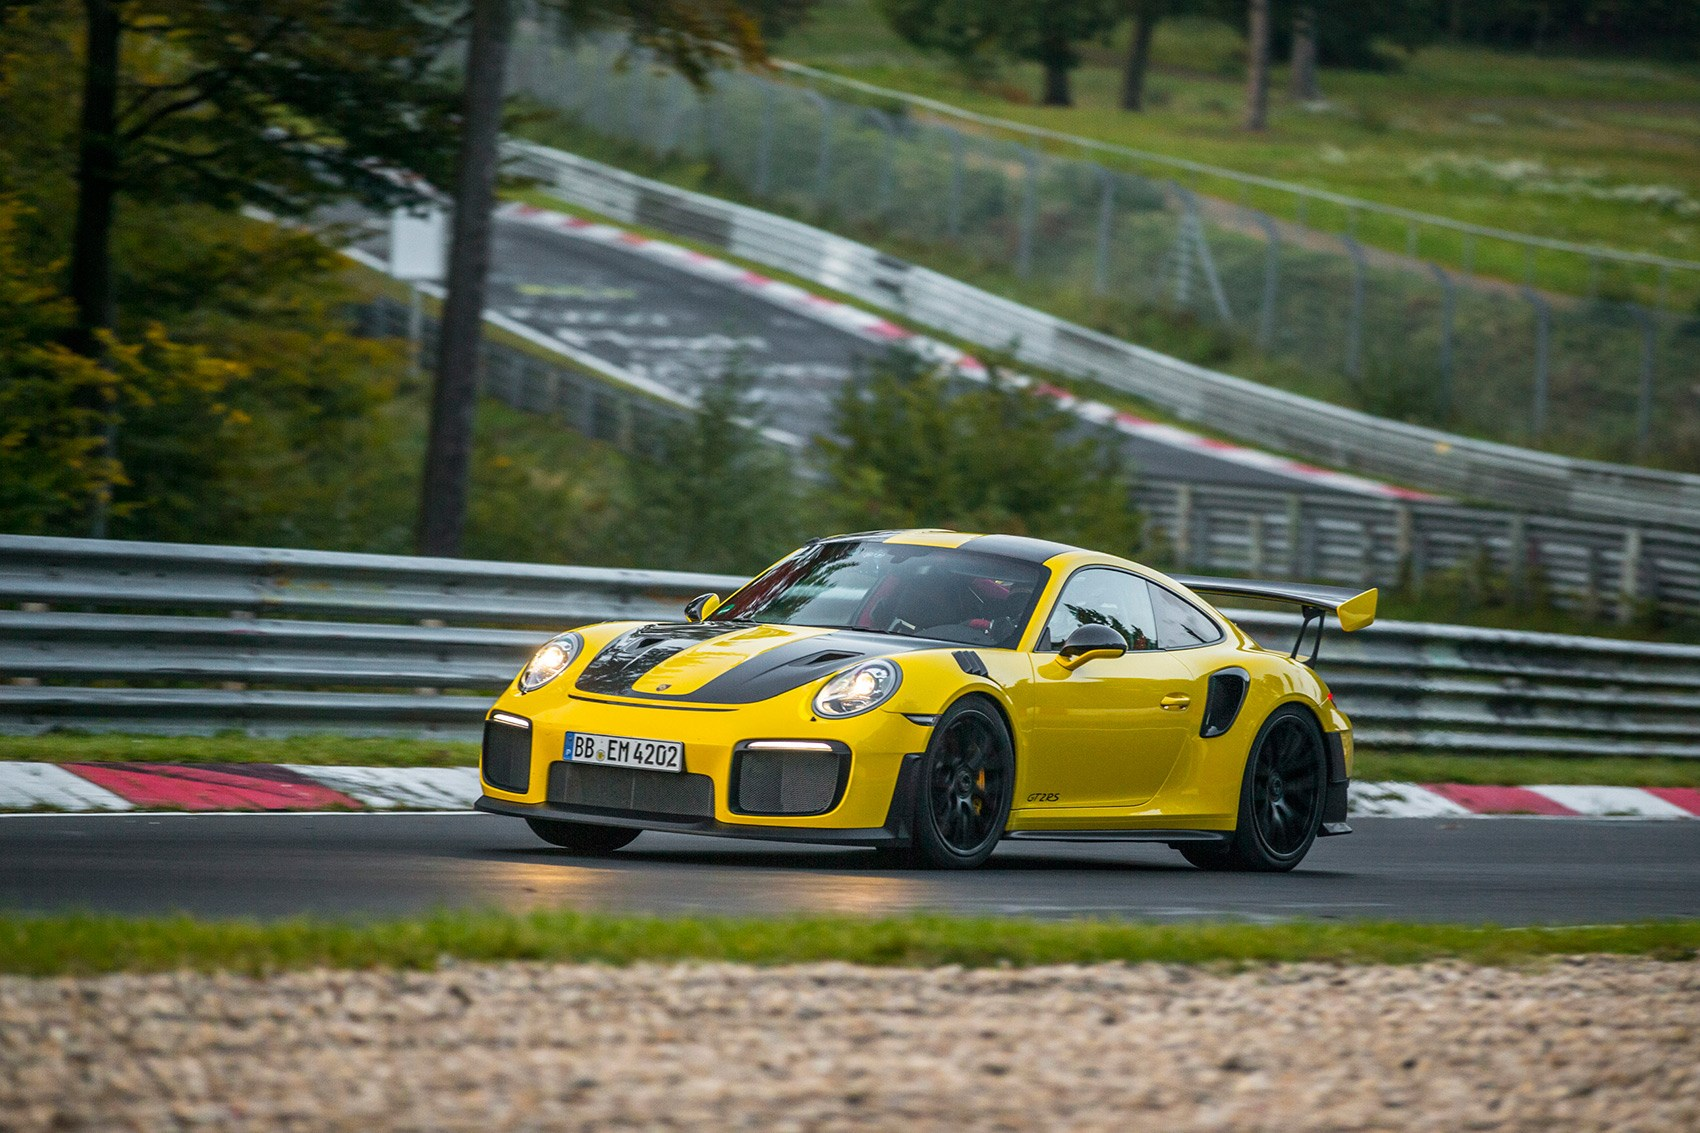 Porsche GT2 RS is fastest 911 around the Nurburgring